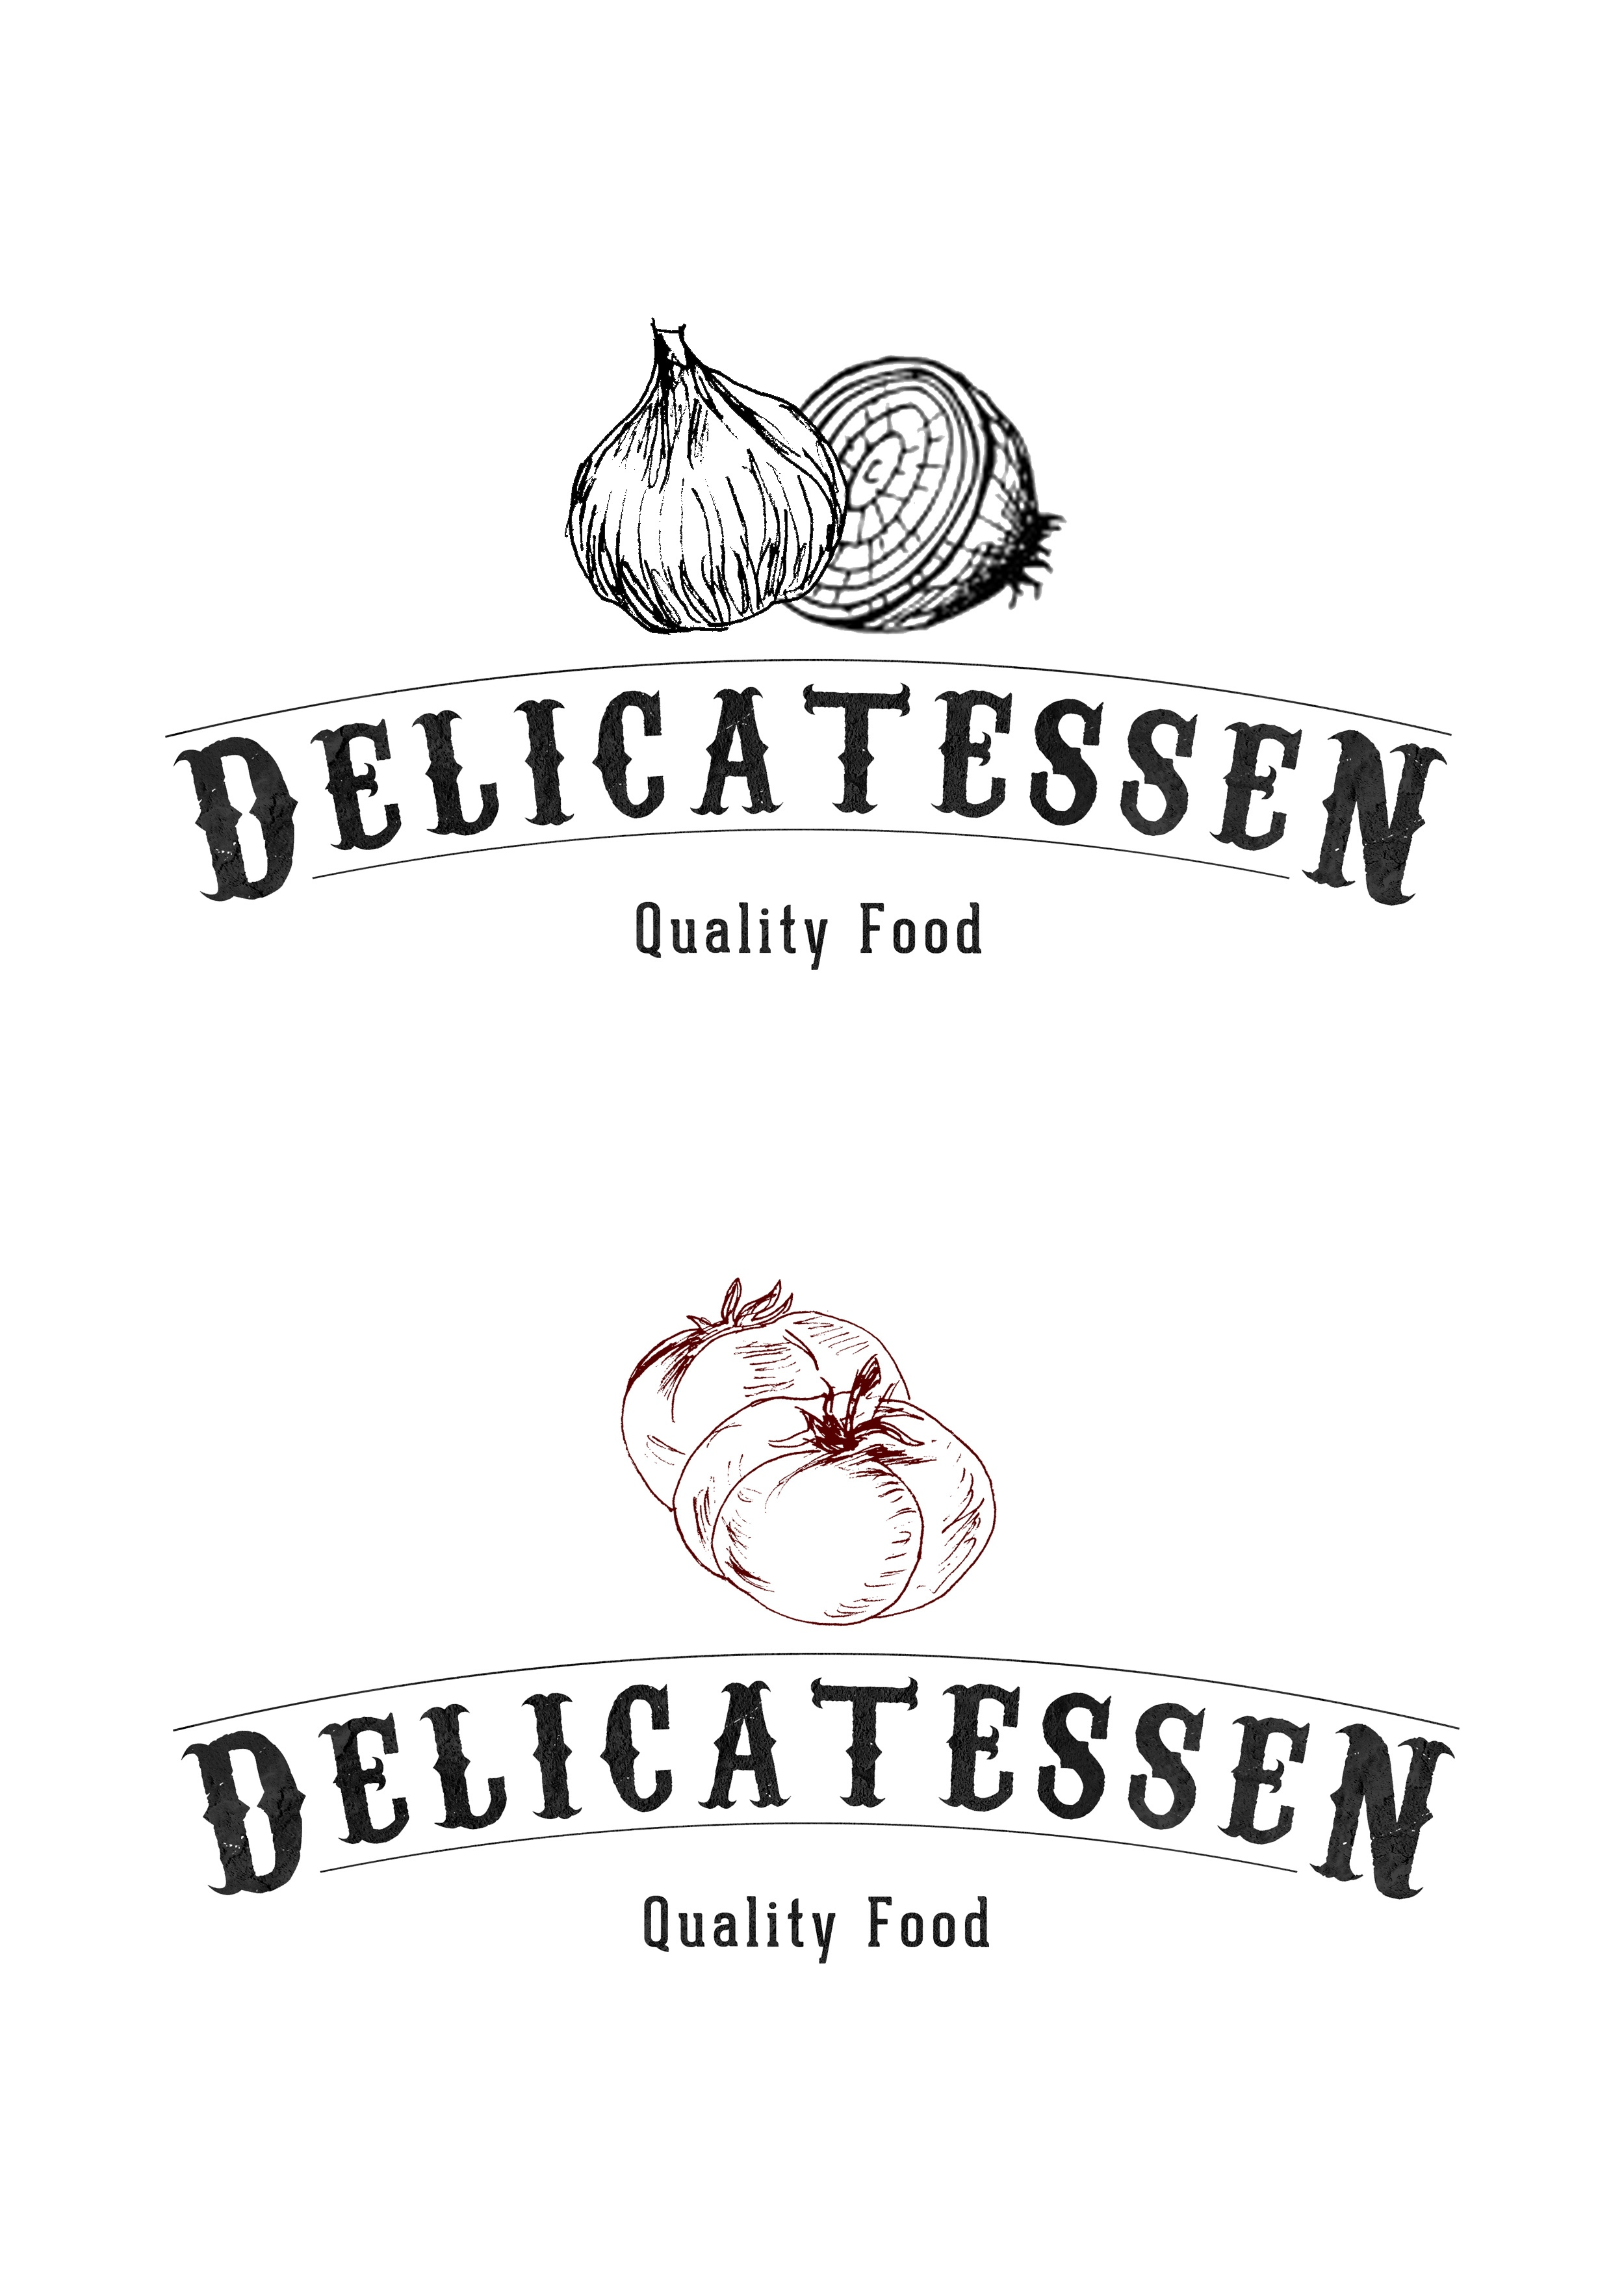 Delicatessen butcher from portugal